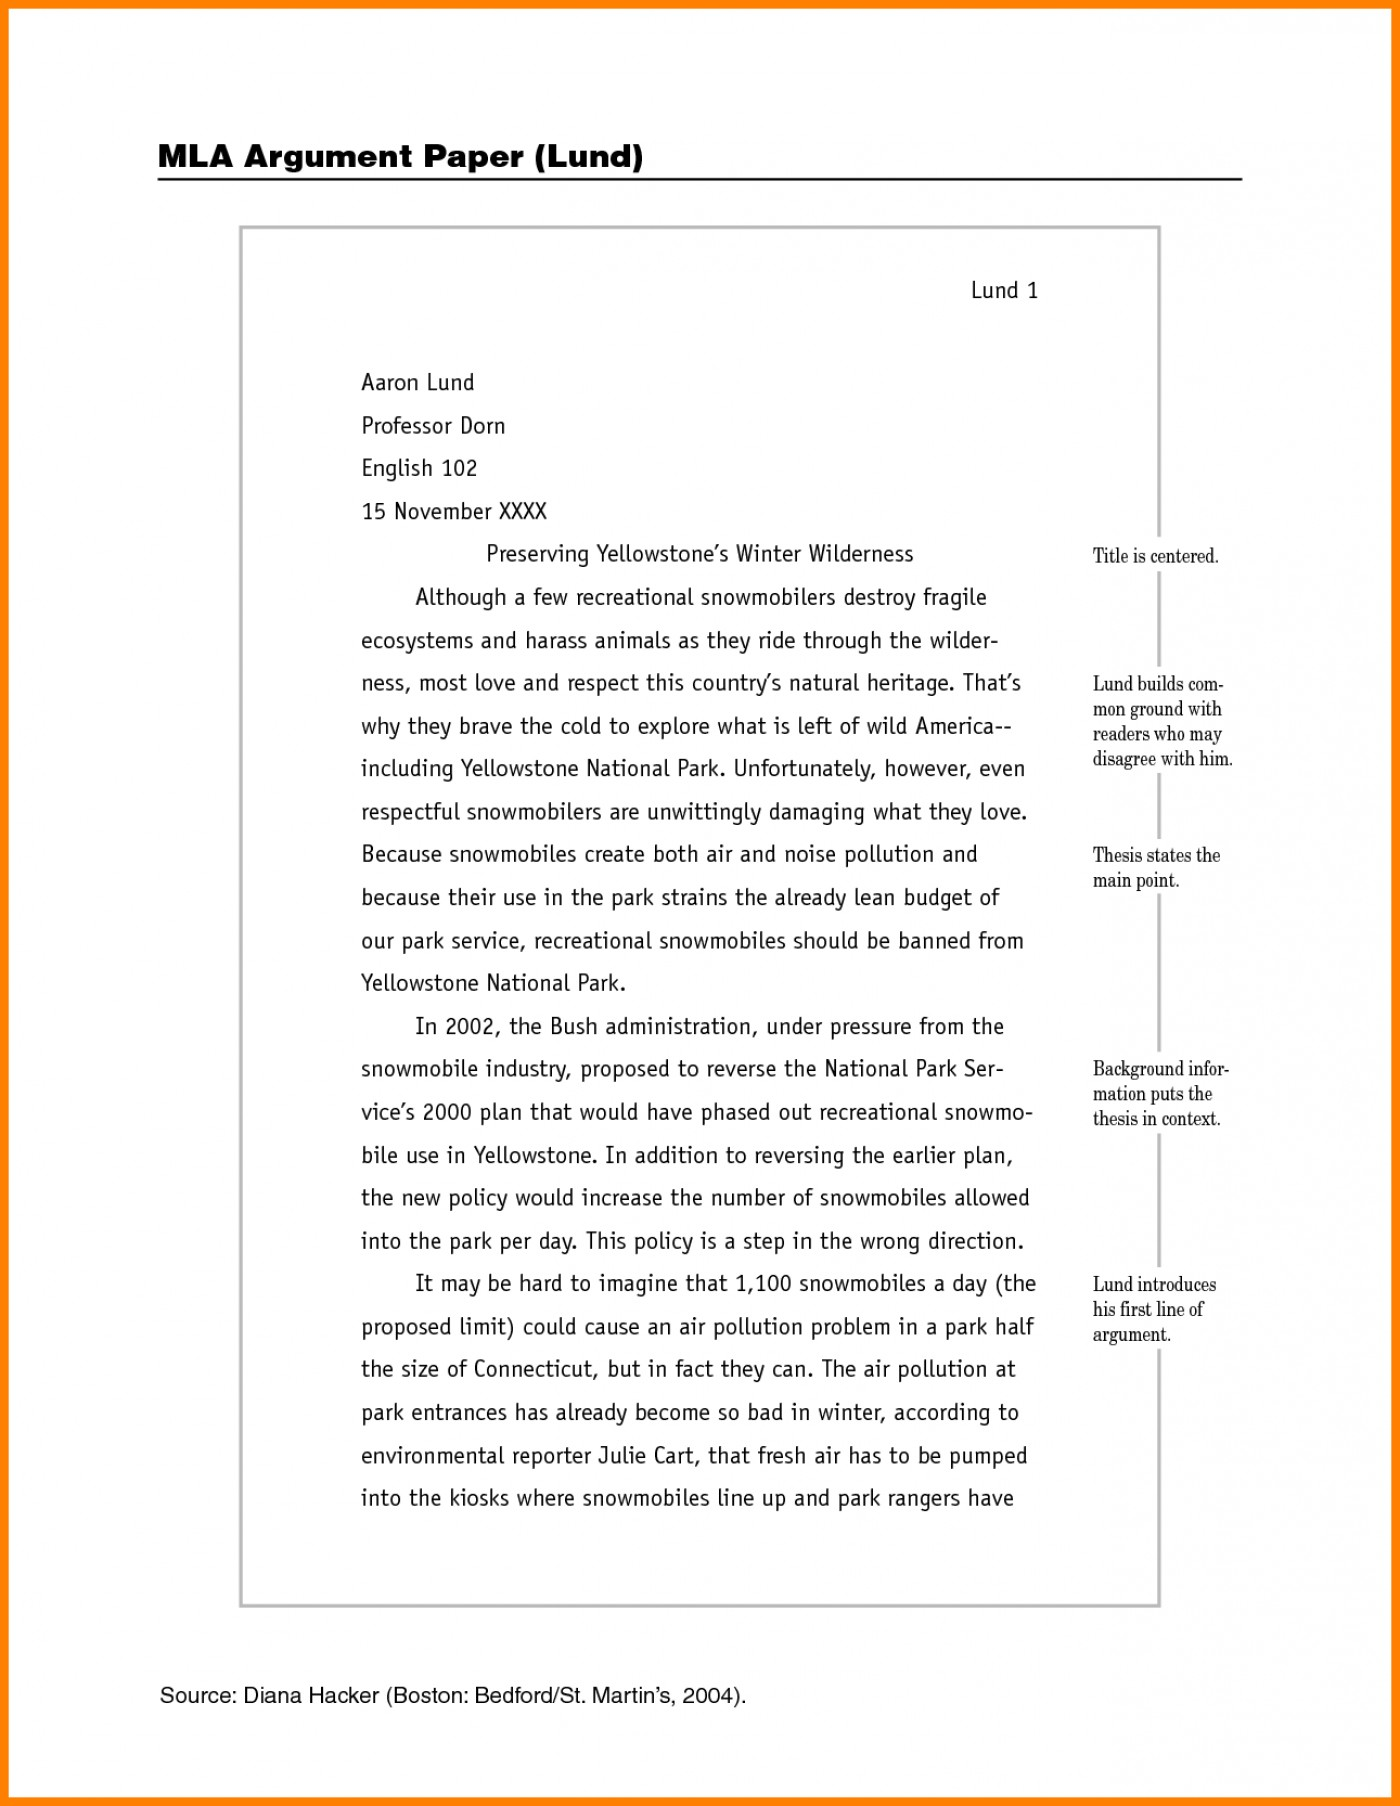 008 How To Write Research Paper Sample Essay Example Mla Stirring Format Layout With Title Page 2017 1400